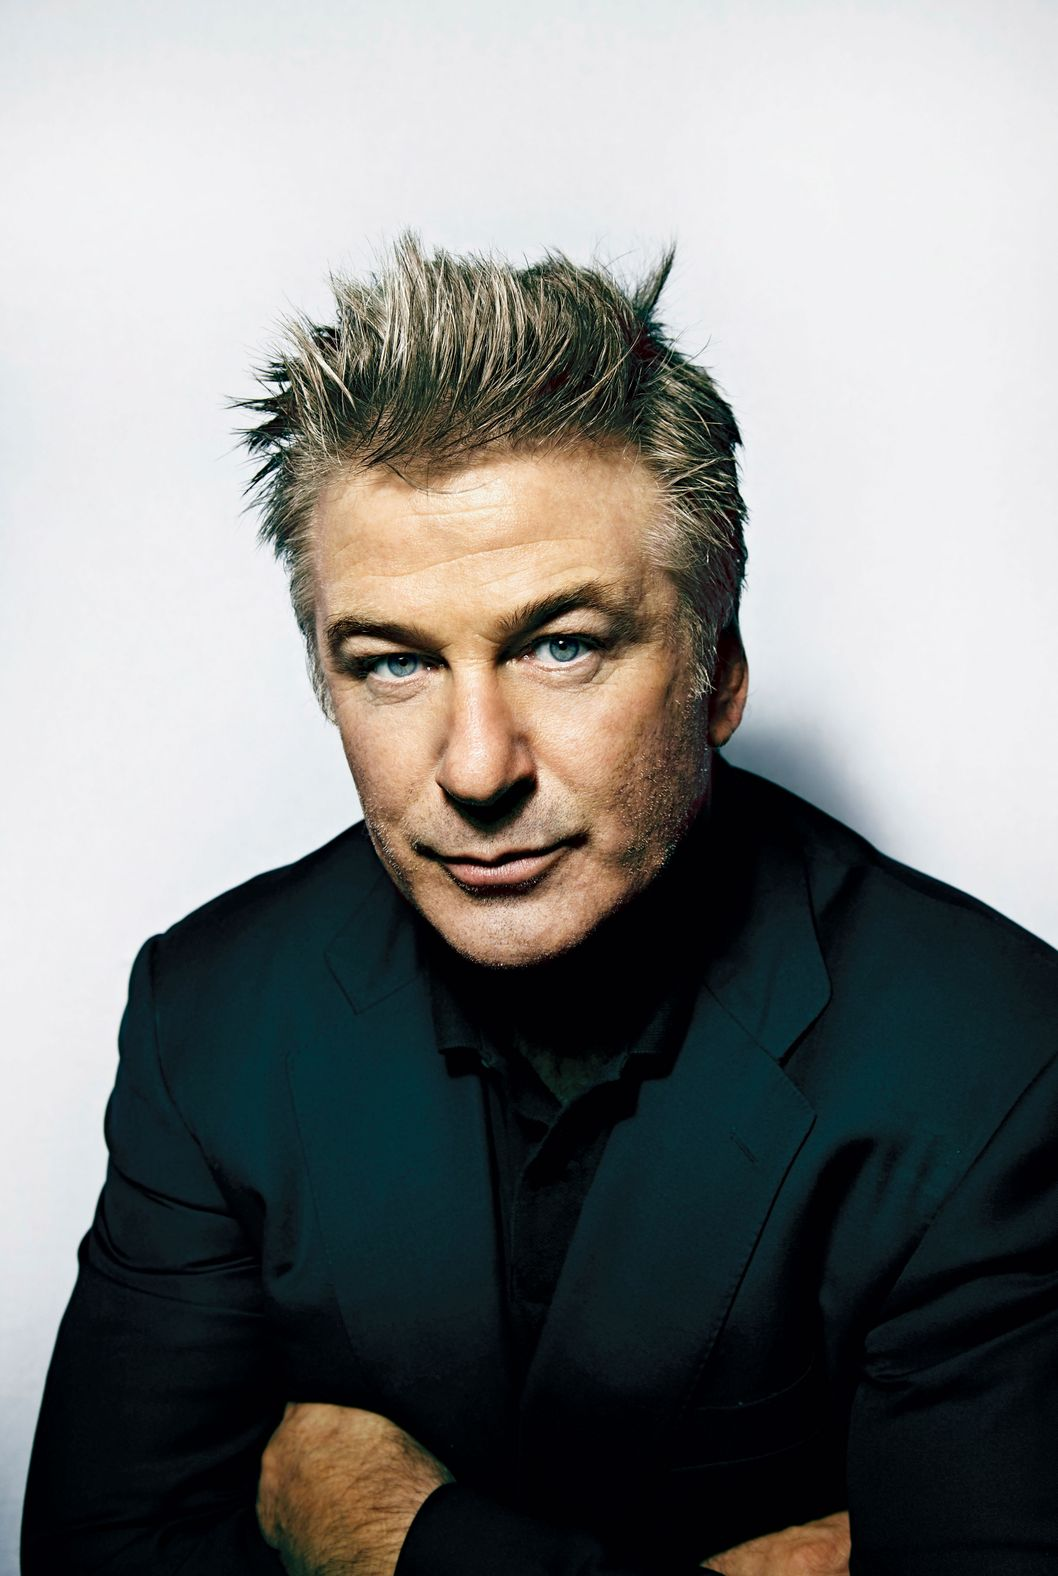 Alec Baldwin  photographed by Alec Baldwin